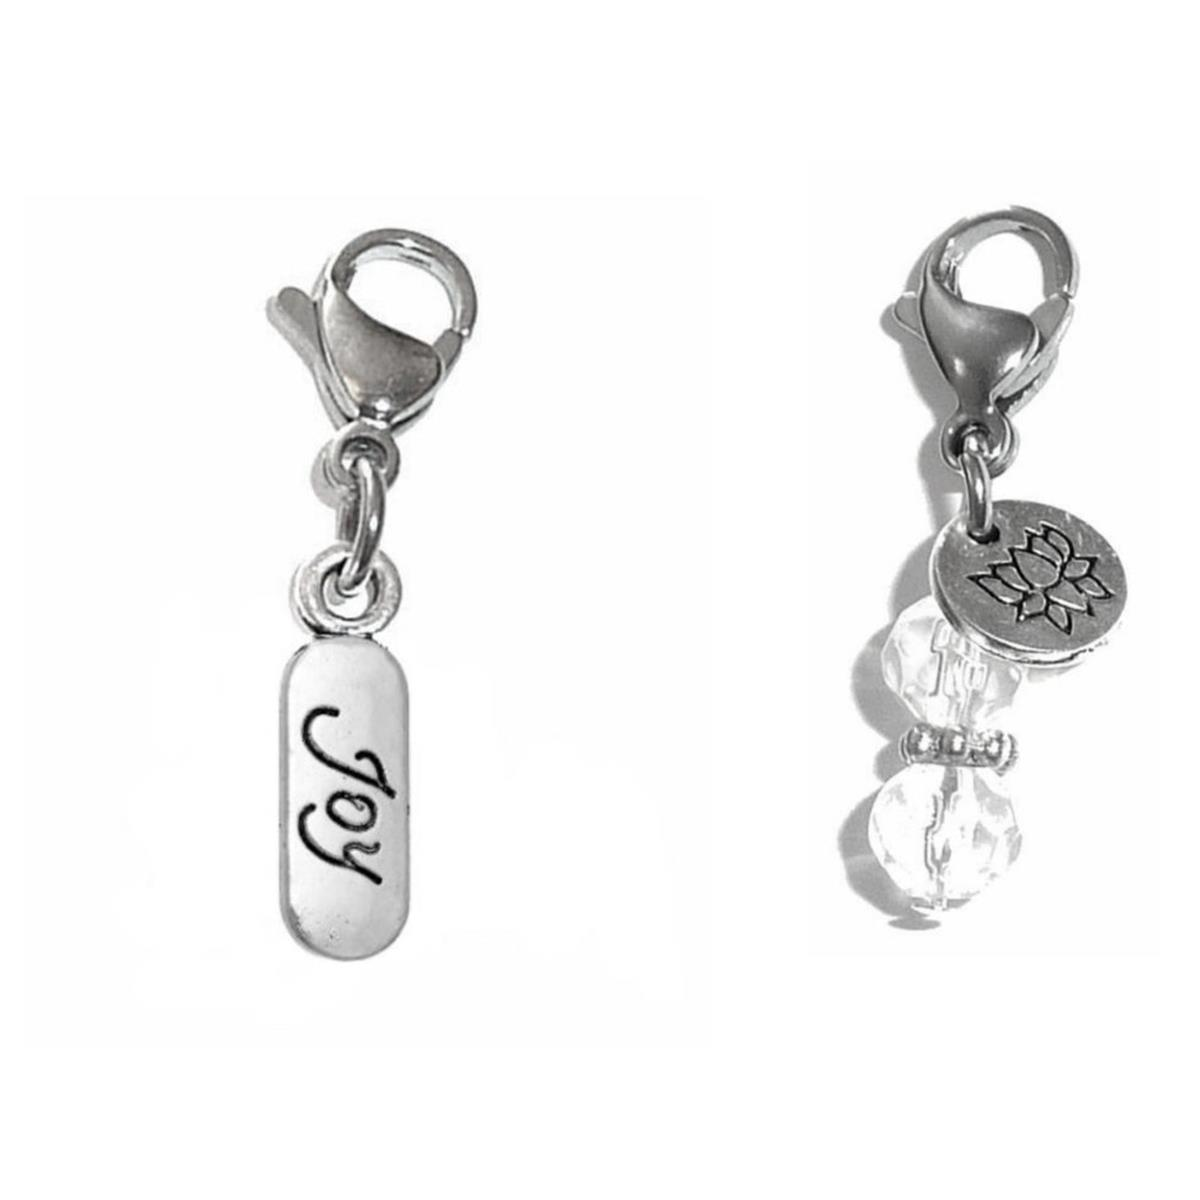 Zipper Charm Clip on Charm I Love Winter,Backpack Charm I Love Winter Zipper Charm,Zipper Pull Purse Charm Clip On Charms,Lobster Claw Charm for Link Bracelets and Necklaces